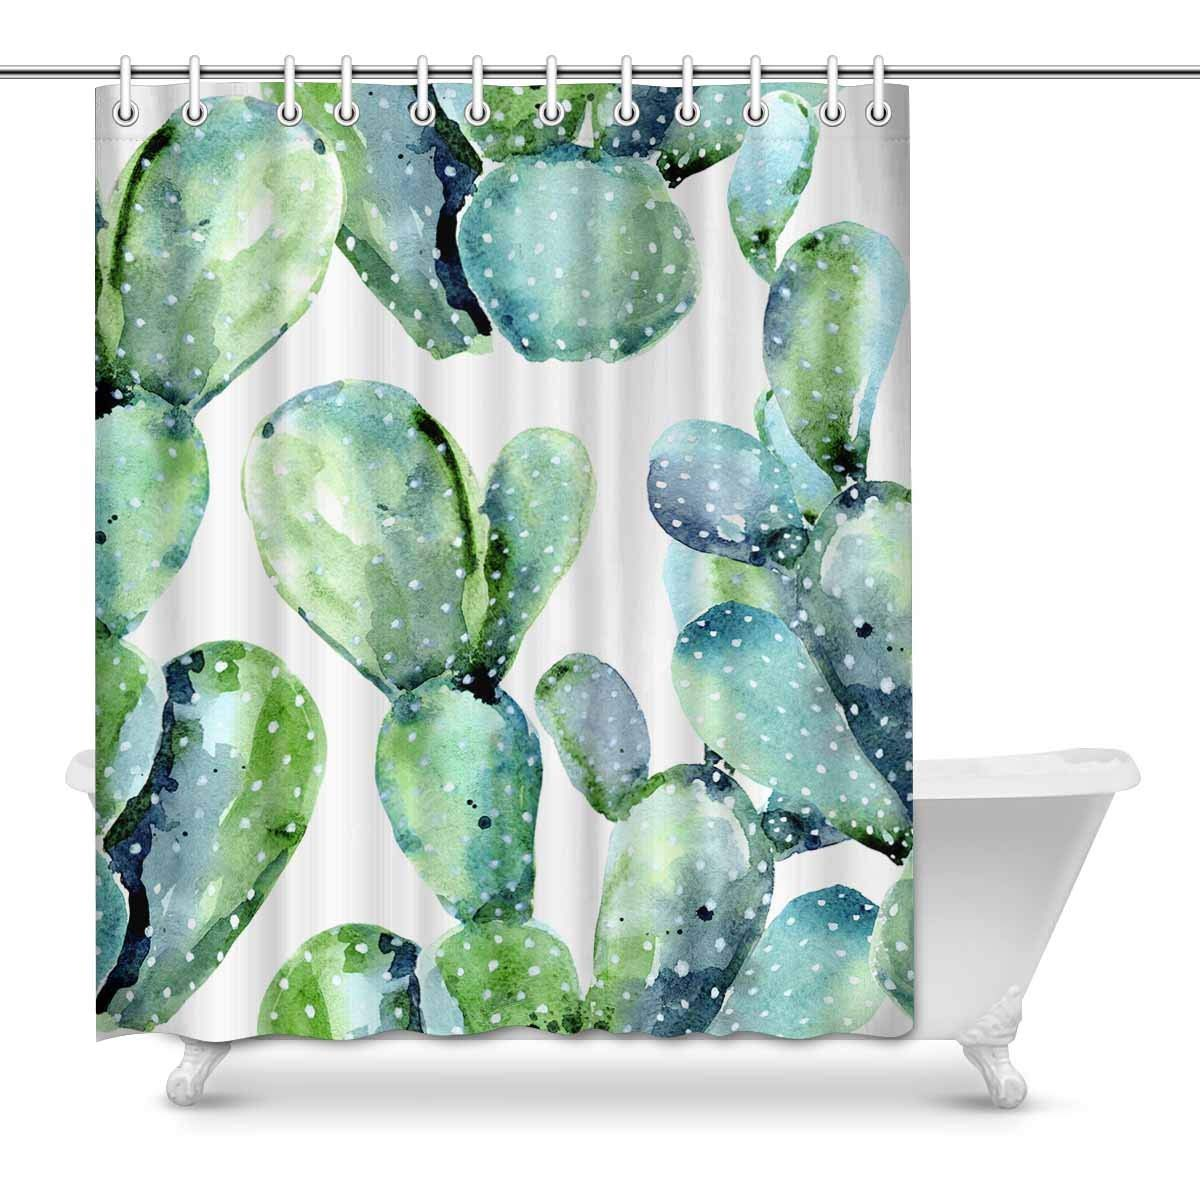 Gckg Watercolor Cactus Shower Curtain Seamless Floral Pattern Polyester Fabric Shower Curtain Bathroom Sets 60x72 Inches